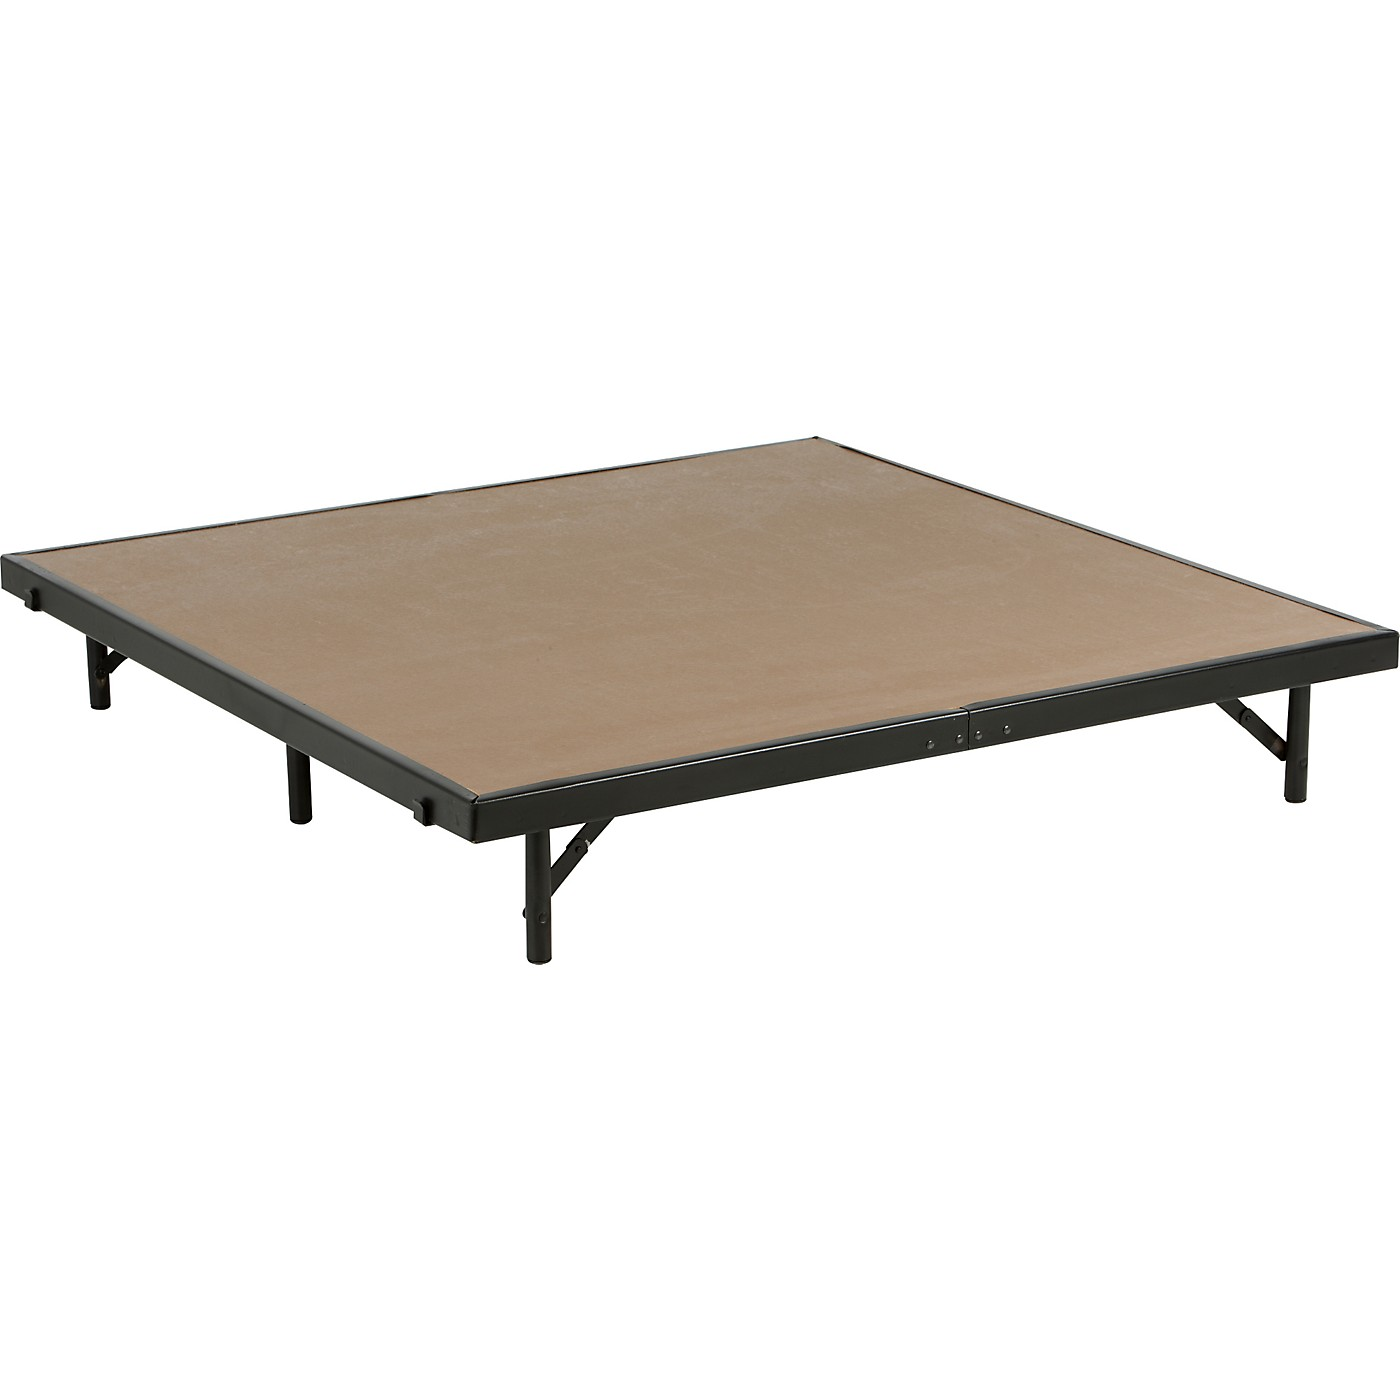 Midwest Folding Products 4' Deep X 4' Wide Single Height Portable Stage & Seated Riser thumbnail